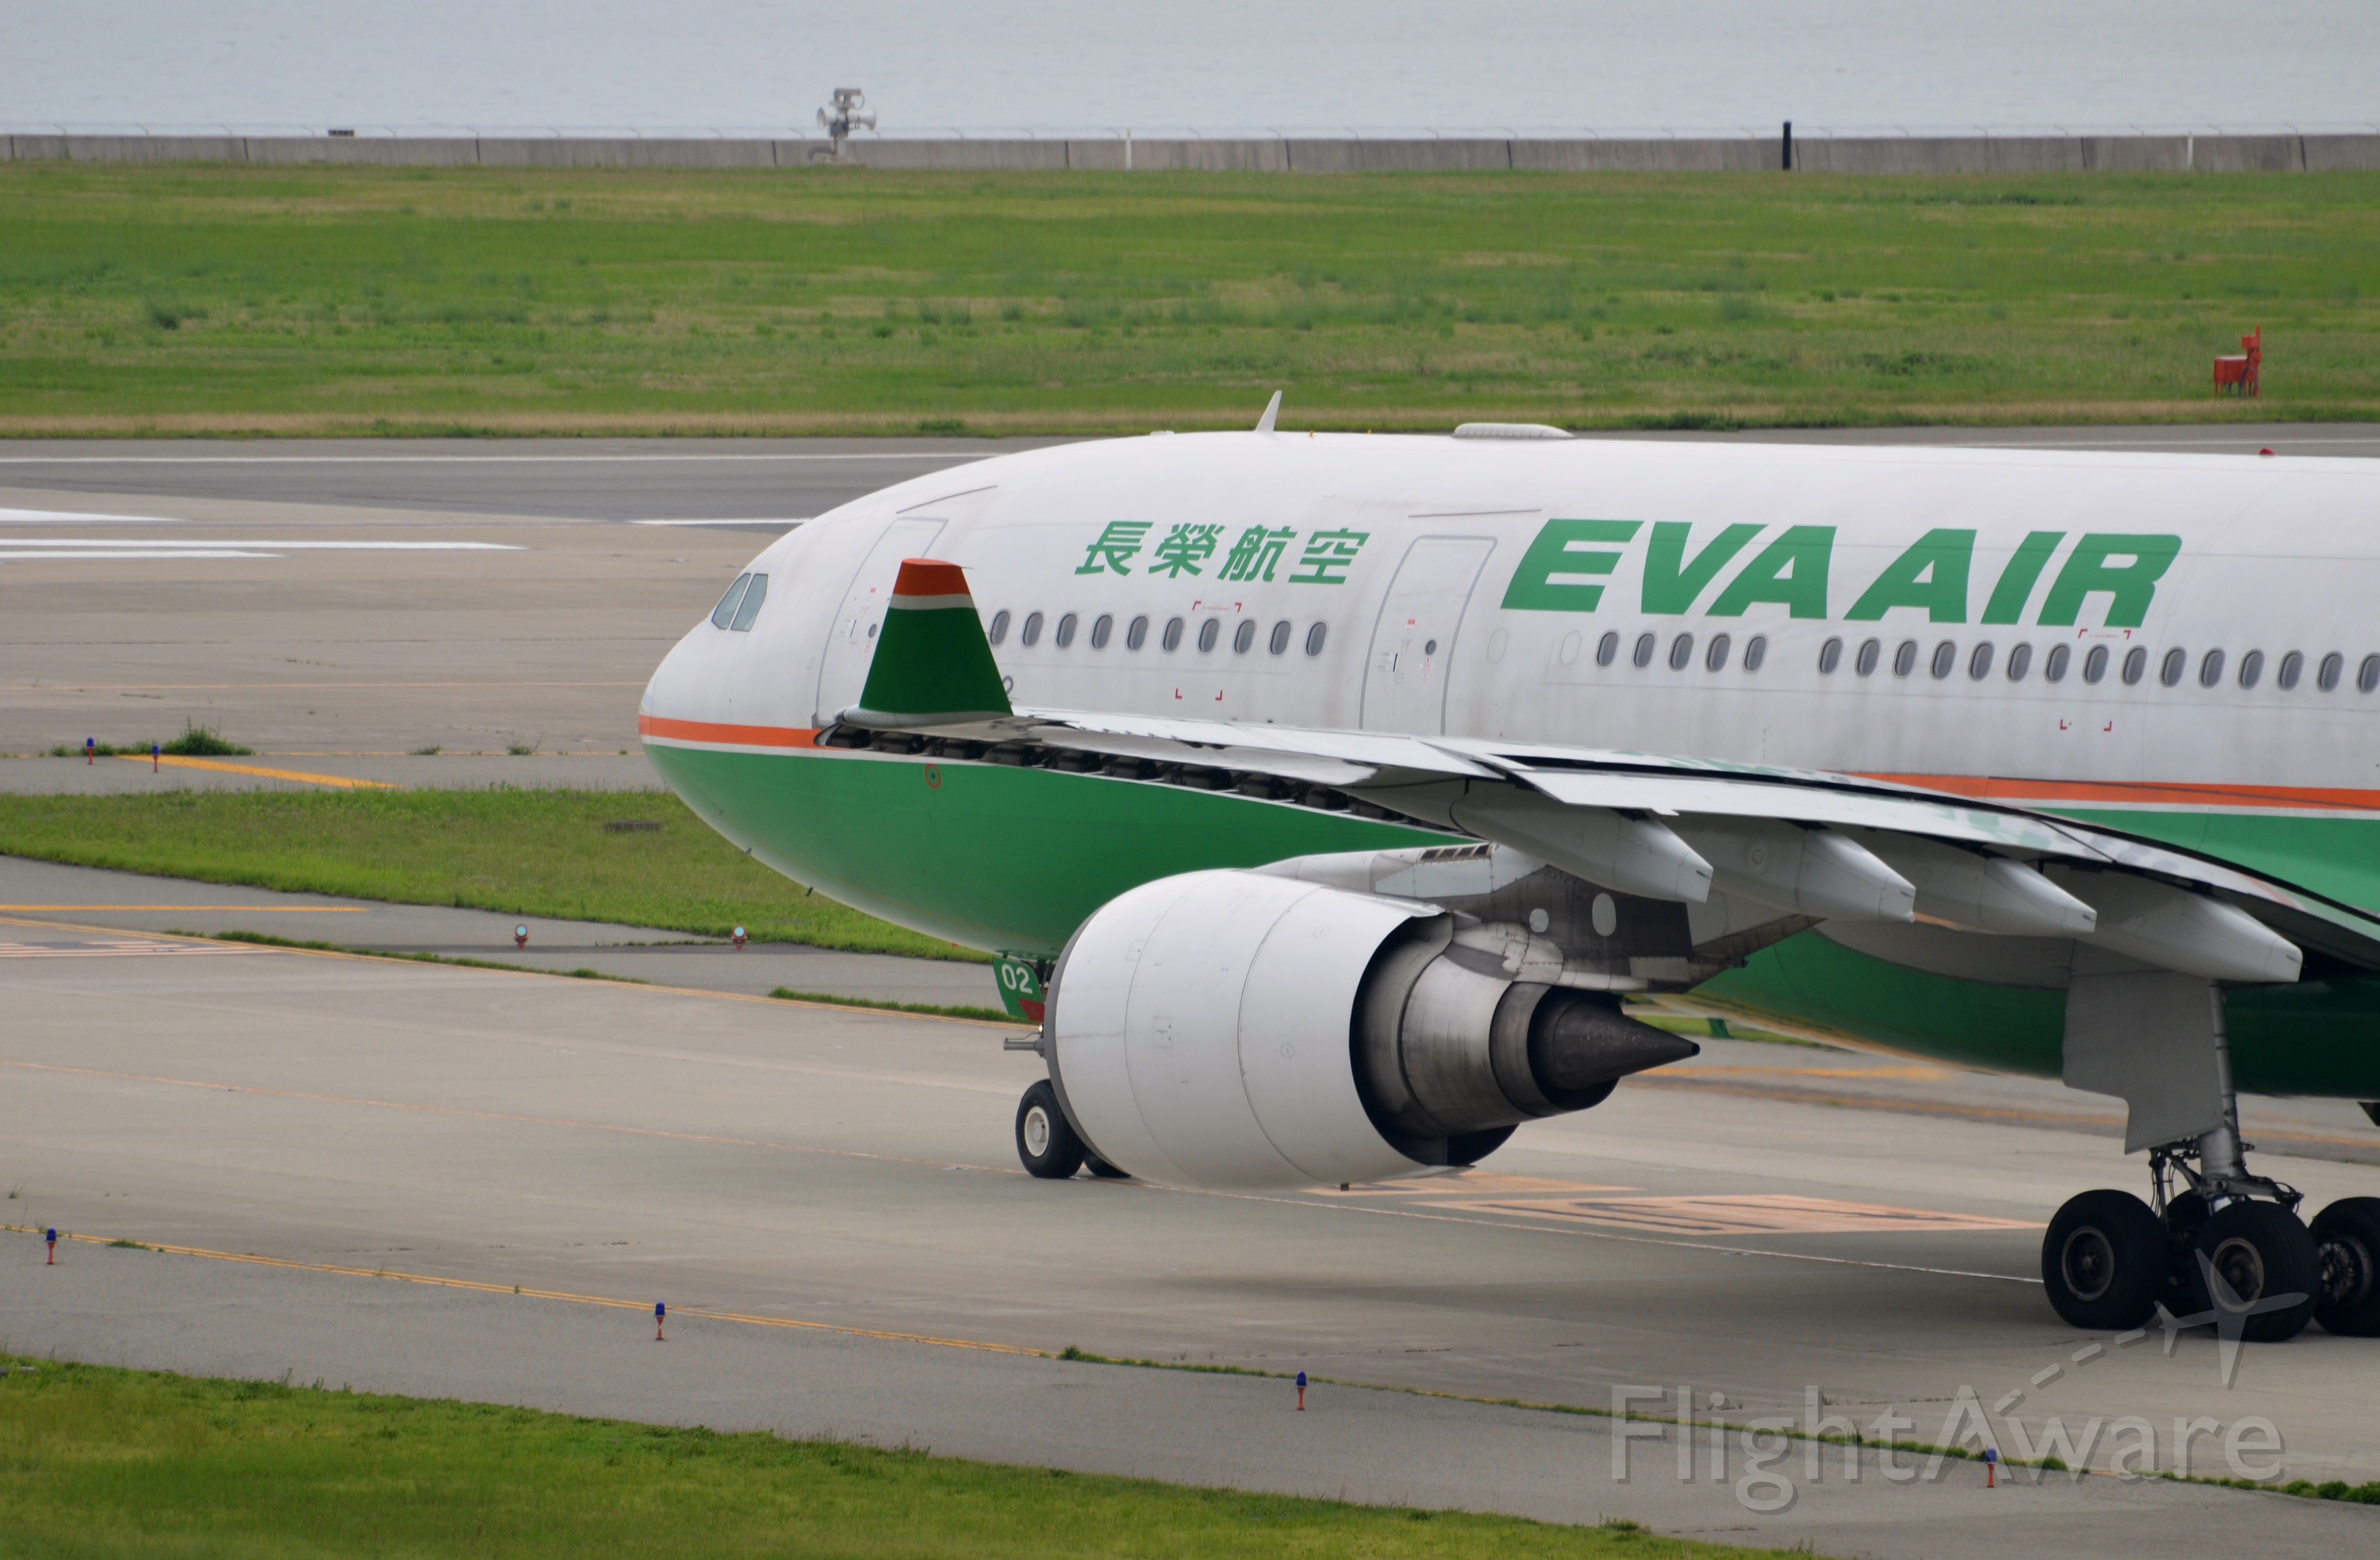 Airbus A330-200 (B-16302) - Airline: EVA Airways (BR/EVA); Airport: Kansai International Airport (KIX/RJBB); Camera: Nikon D7000; Date: 4 July 2012